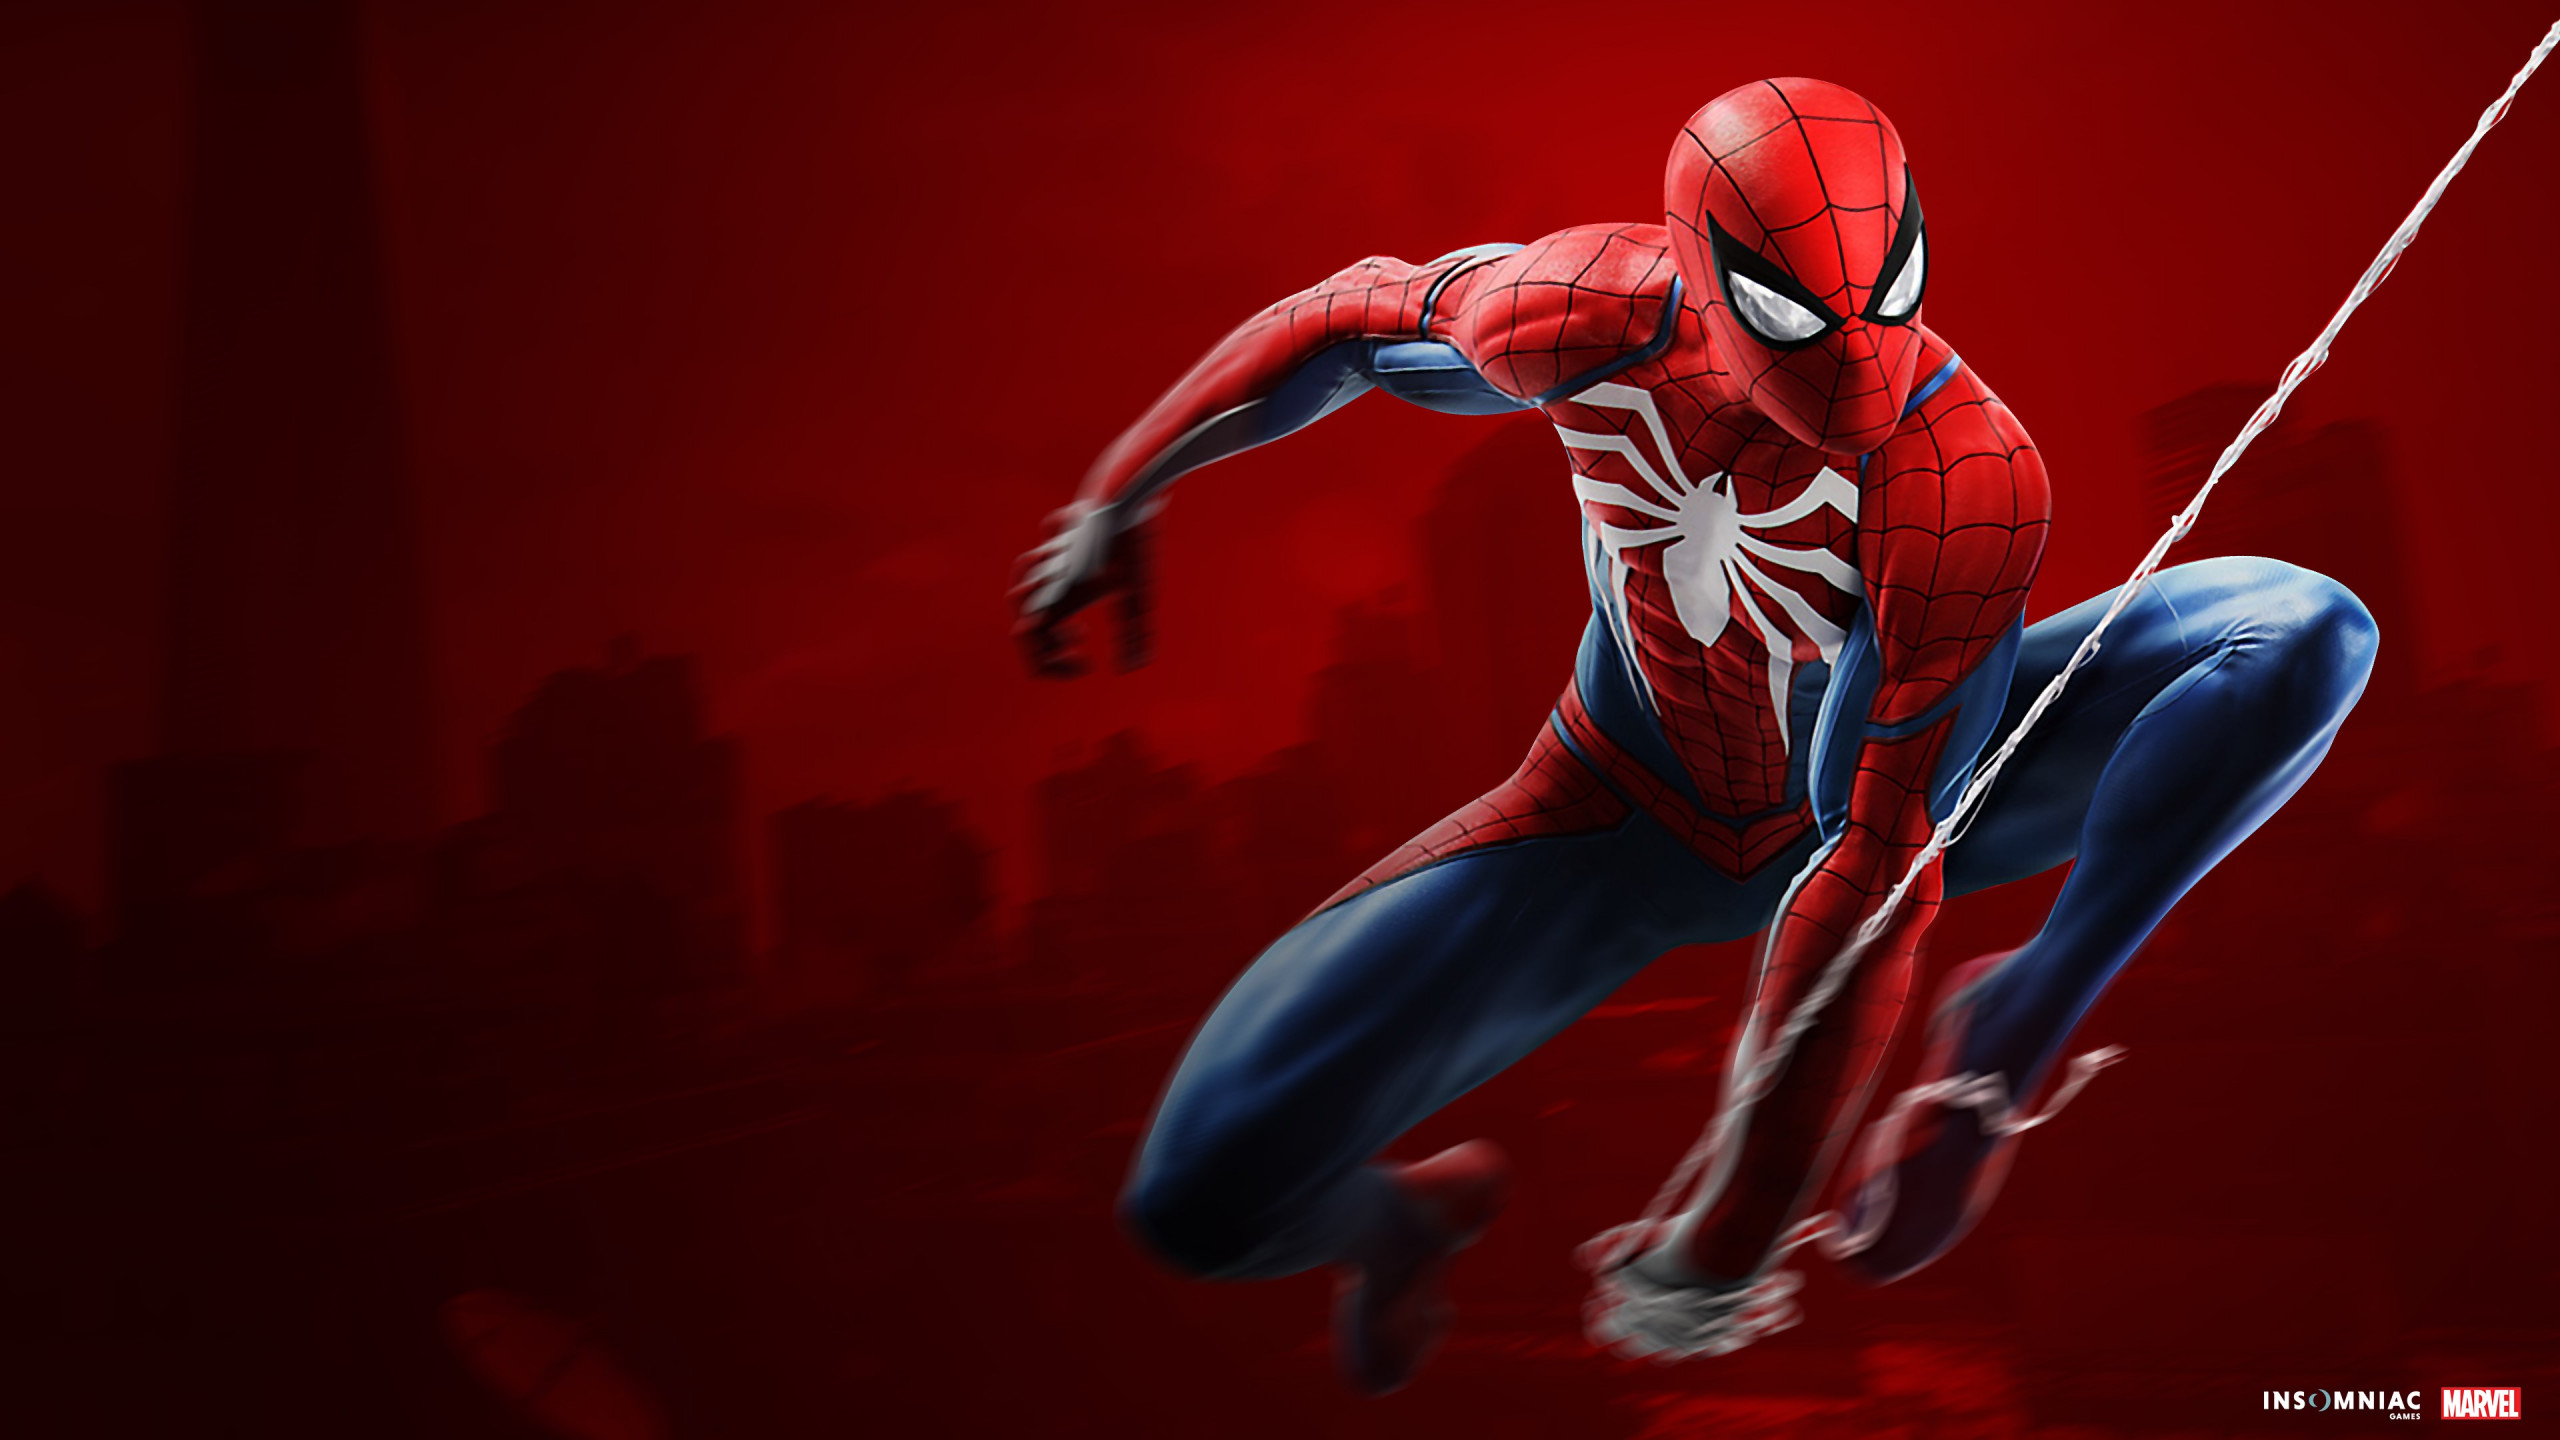 Spider Man game on PS4 wallpaper 2560x1440